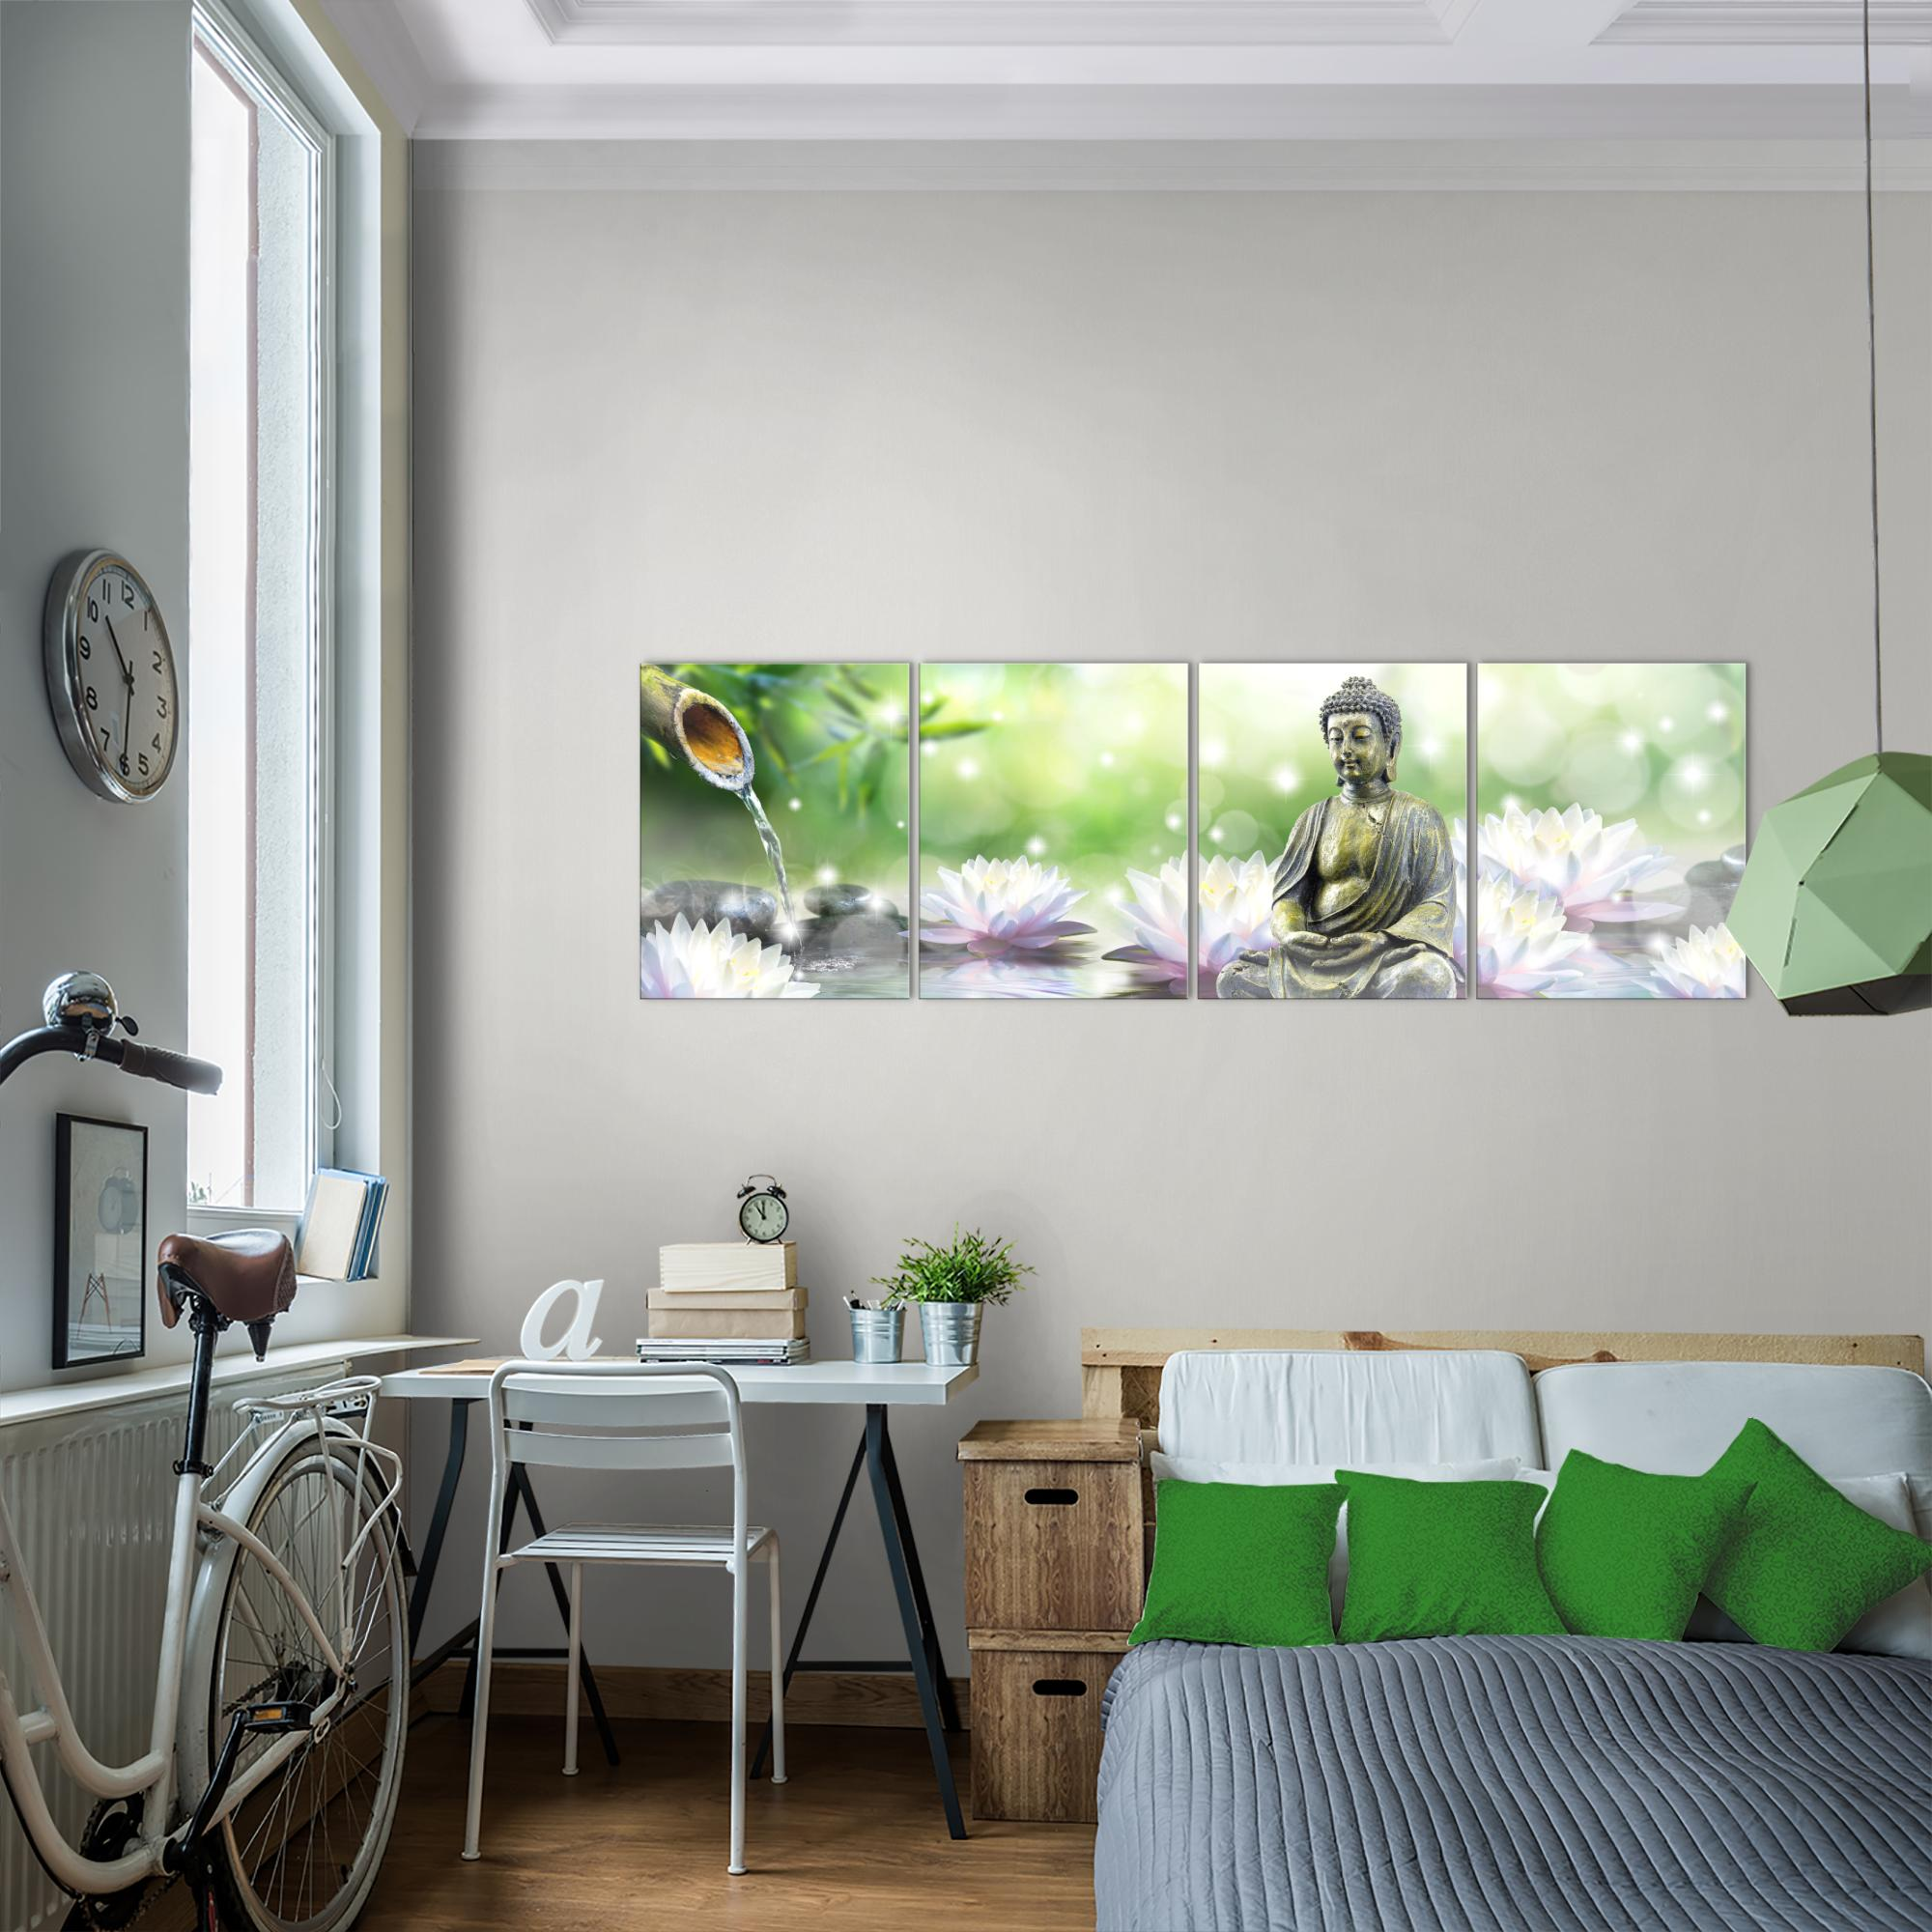 feng shui buddha bild kunstdruck auf vlies leinwand xxl dekoration 018246p. Black Bedroom Furniture Sets. Home Design Ideas